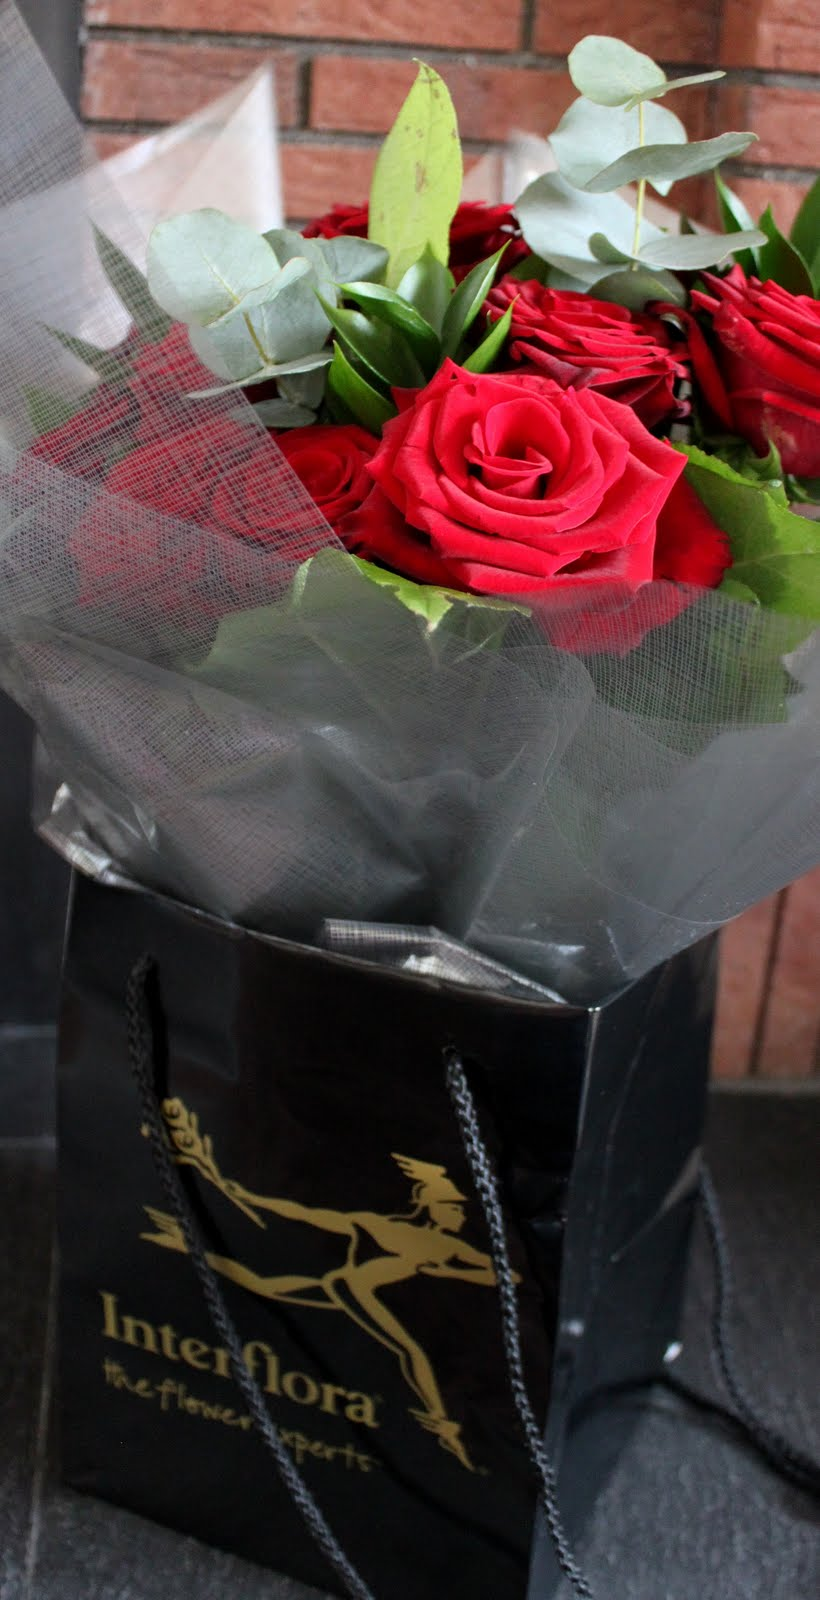 Flower Bouquet By Interflora A Review